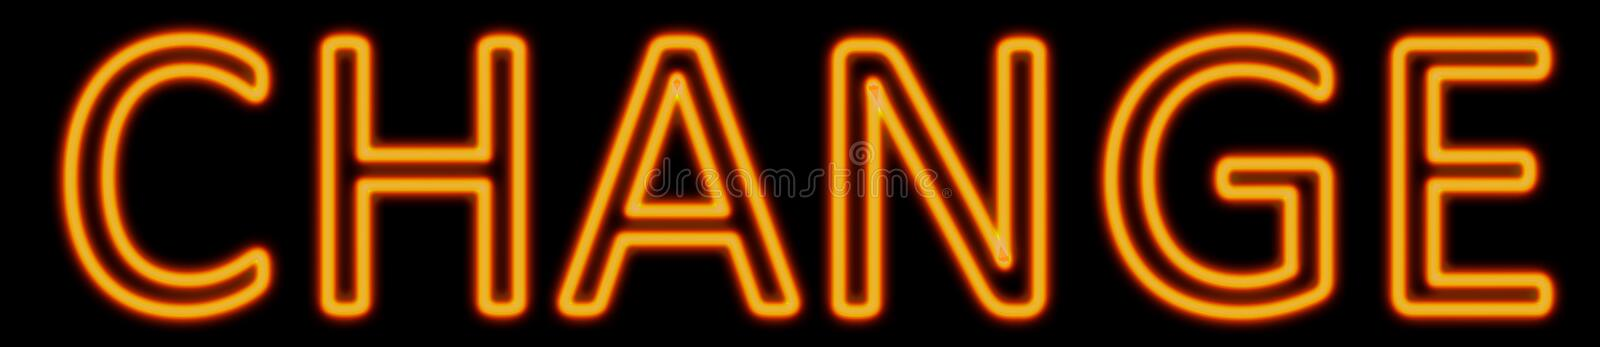 Change neon sign. Abstract 3d rendered words change orange neon sign on black background royalty free illustration